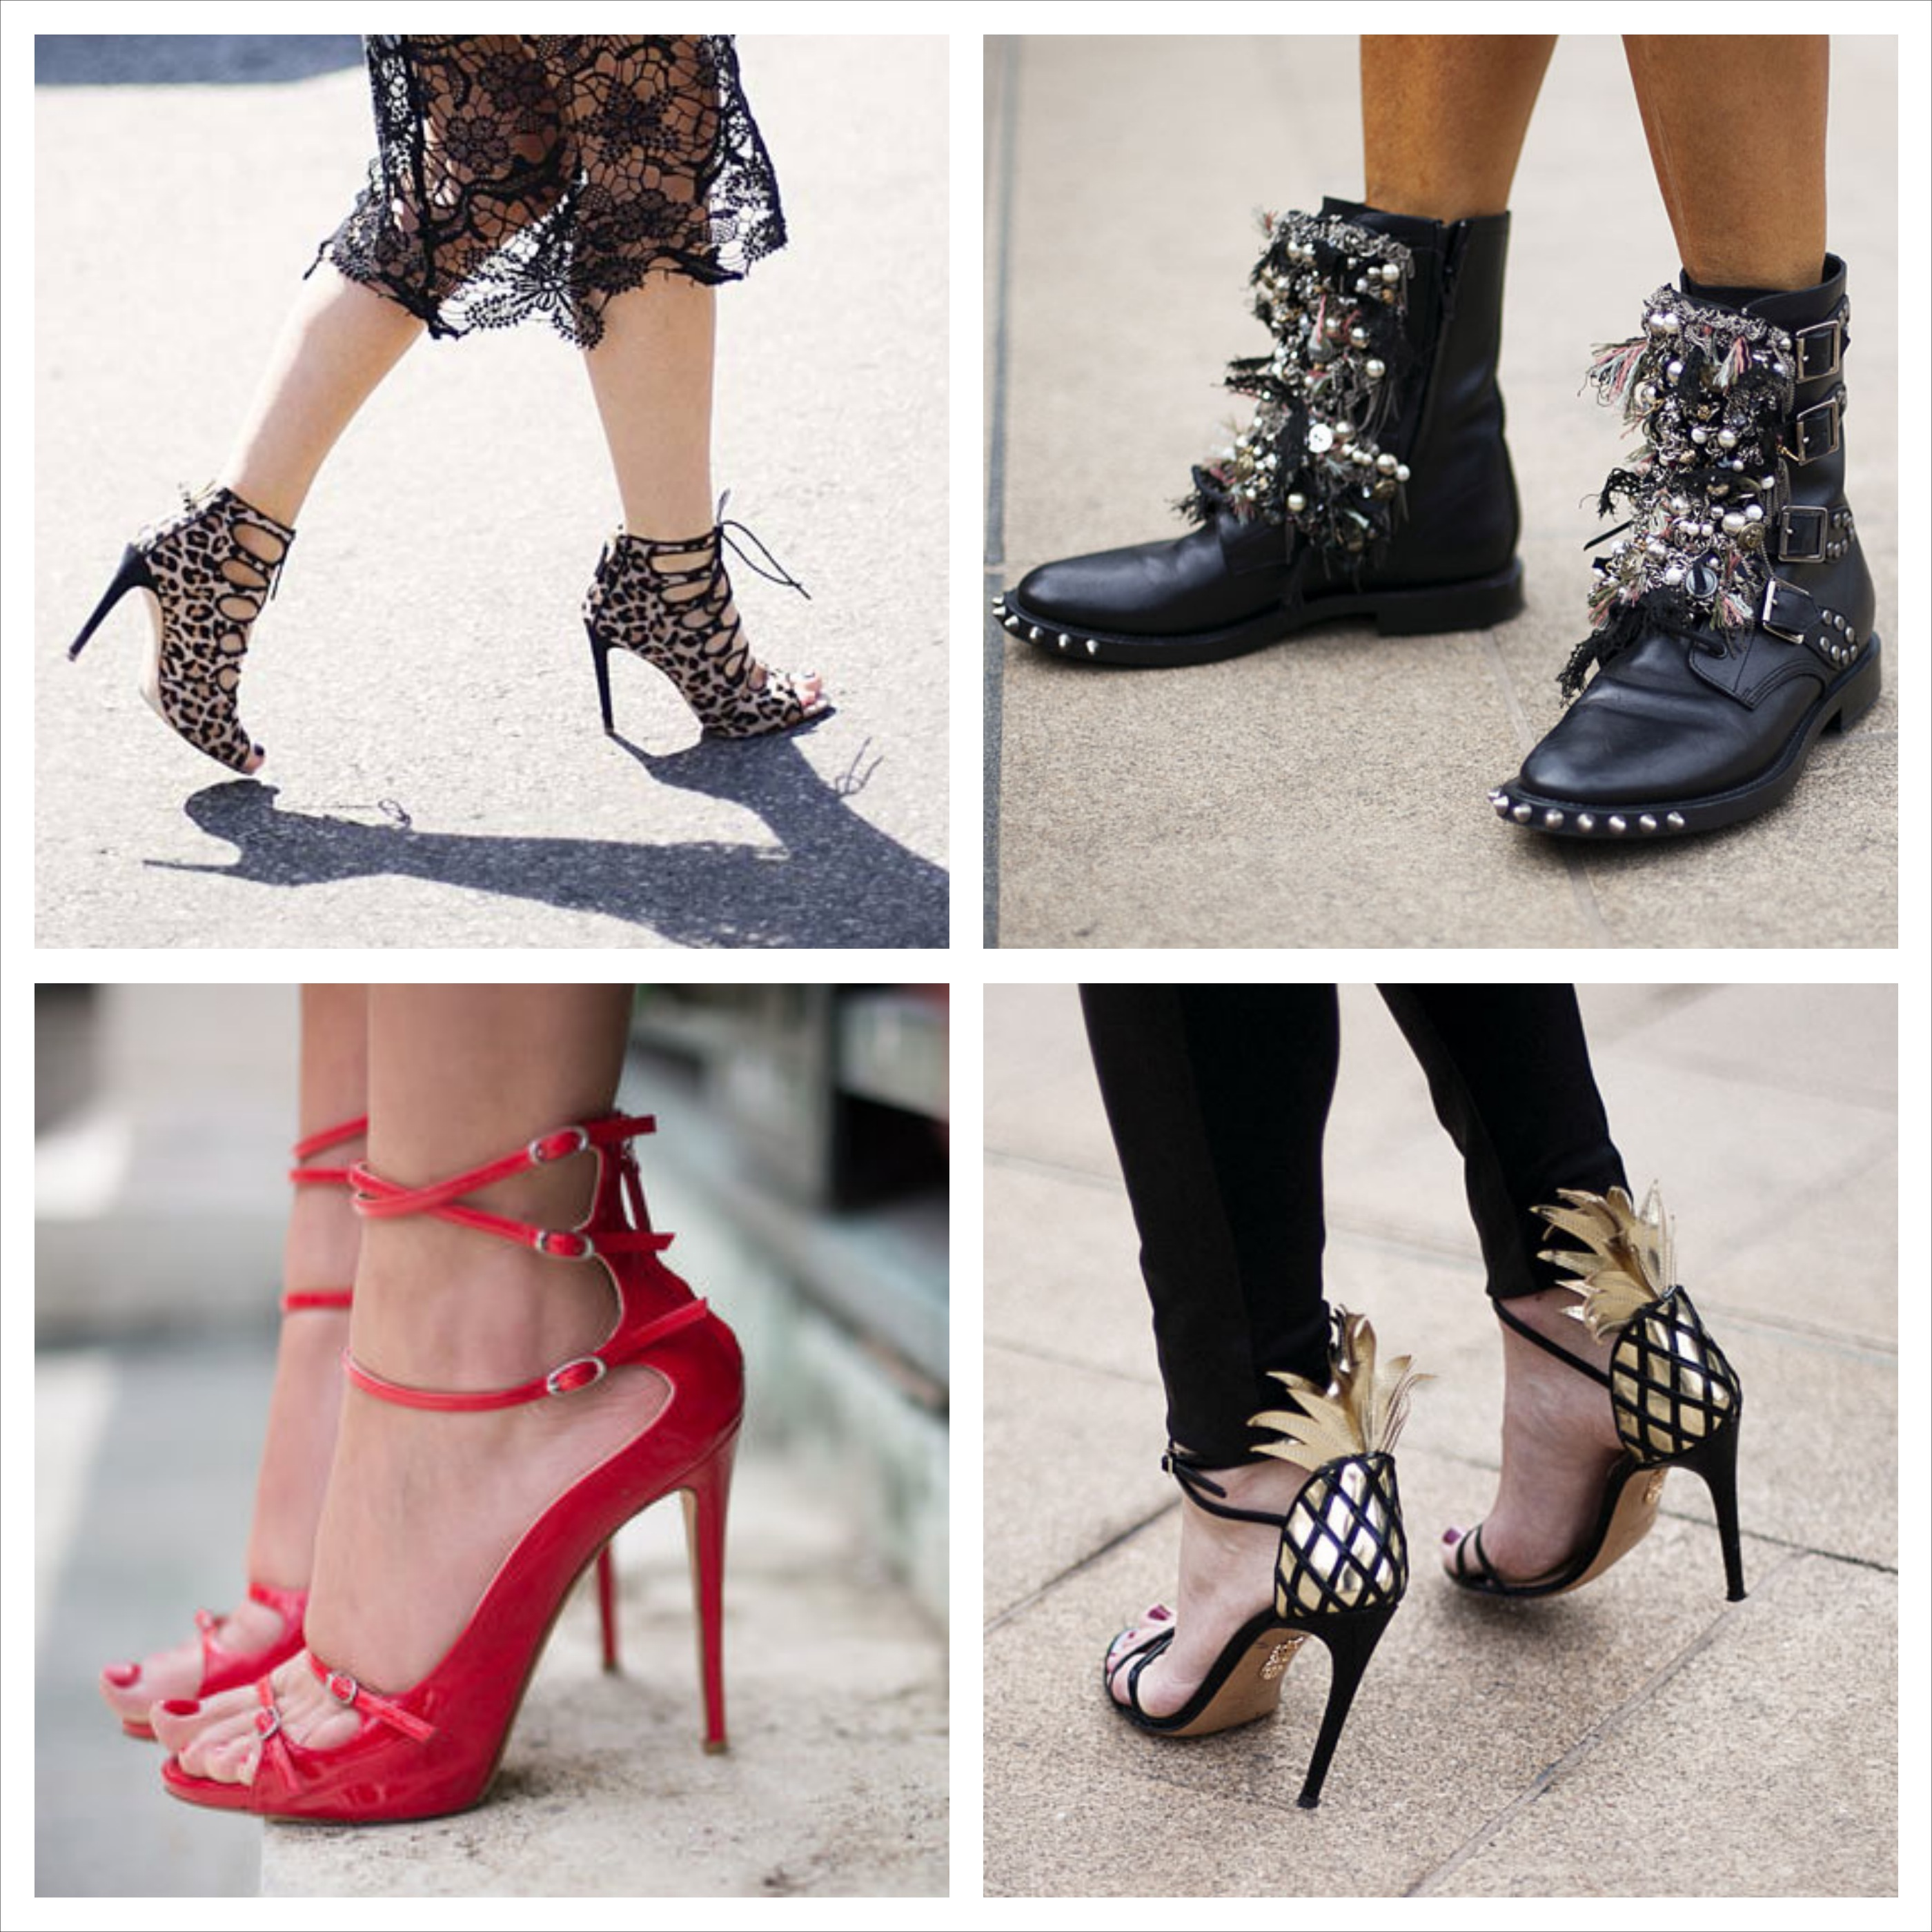 Sometimes the best part about getting dressed is what goes on your feet. So we're showing you a boatload of shoe options to choose from for spring Heels, sneakers, oxfords.